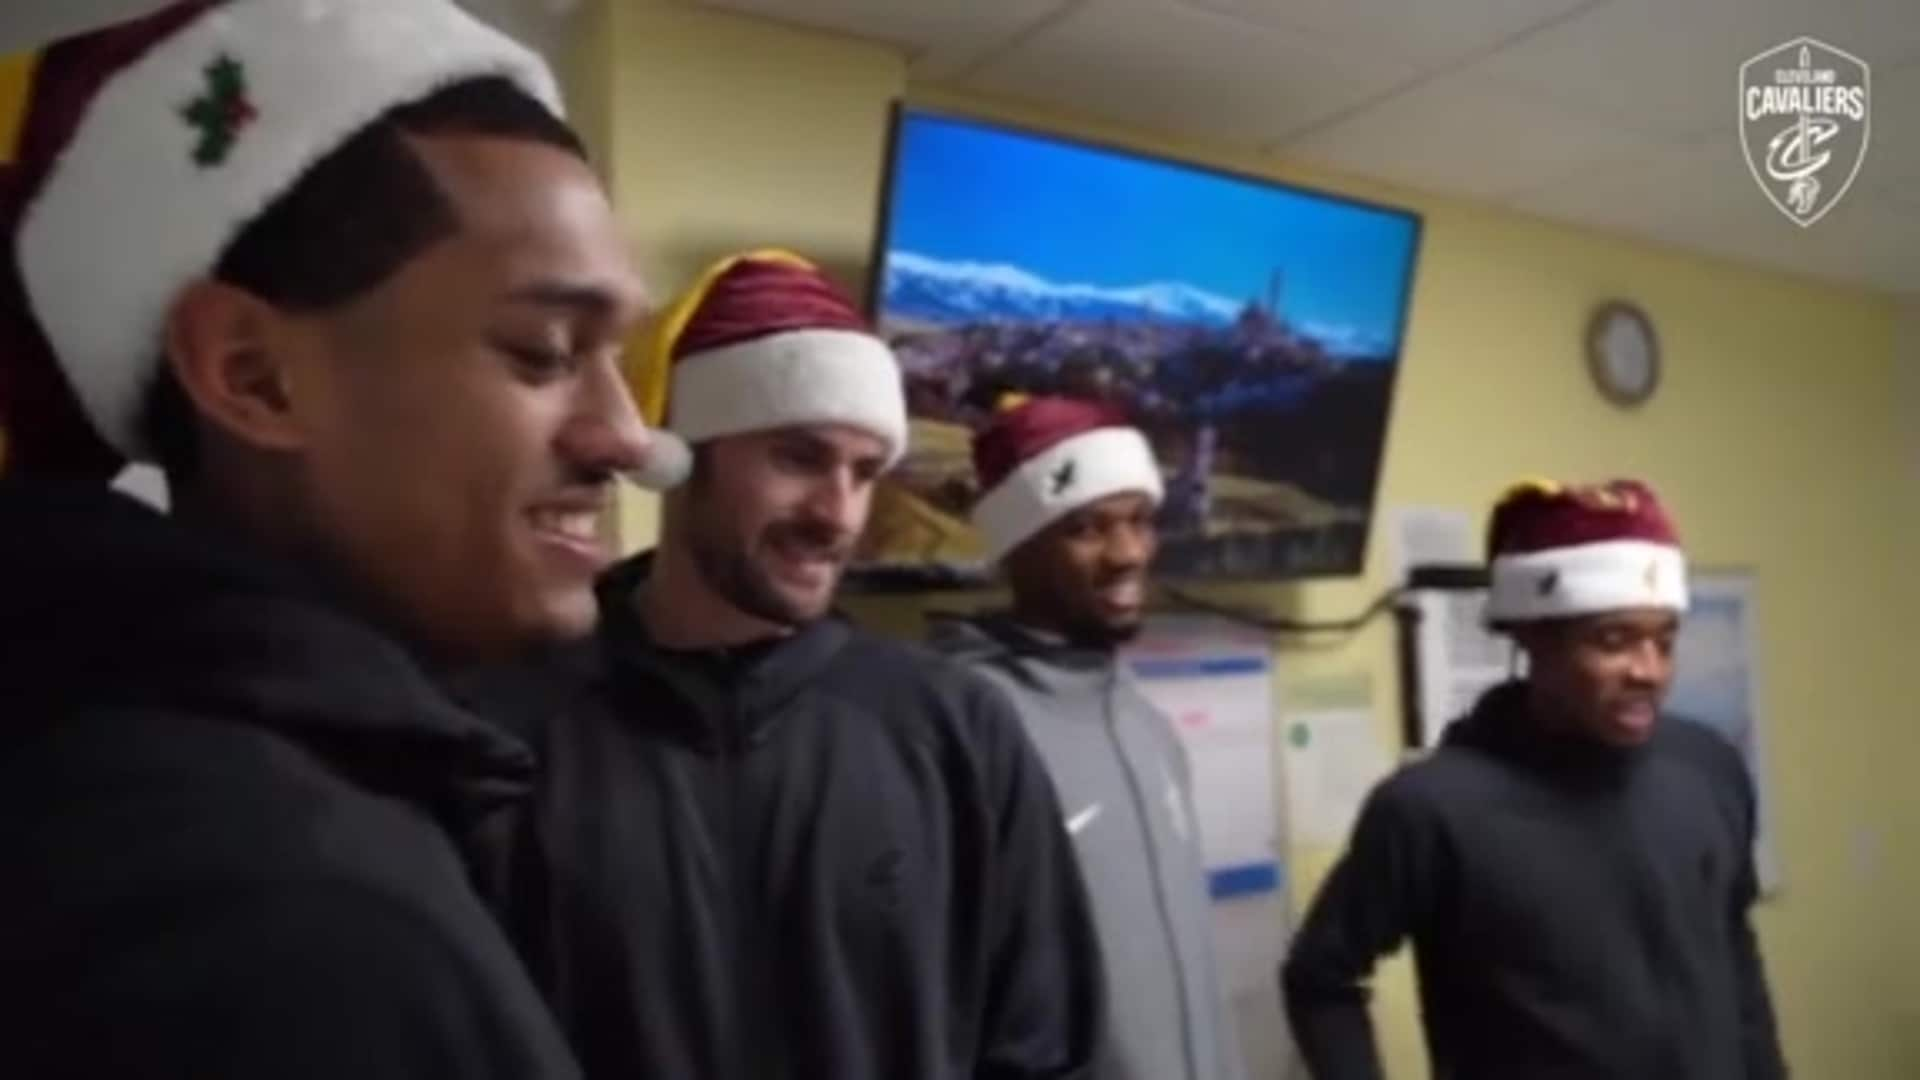 Cavs Players Provide Company for Patients